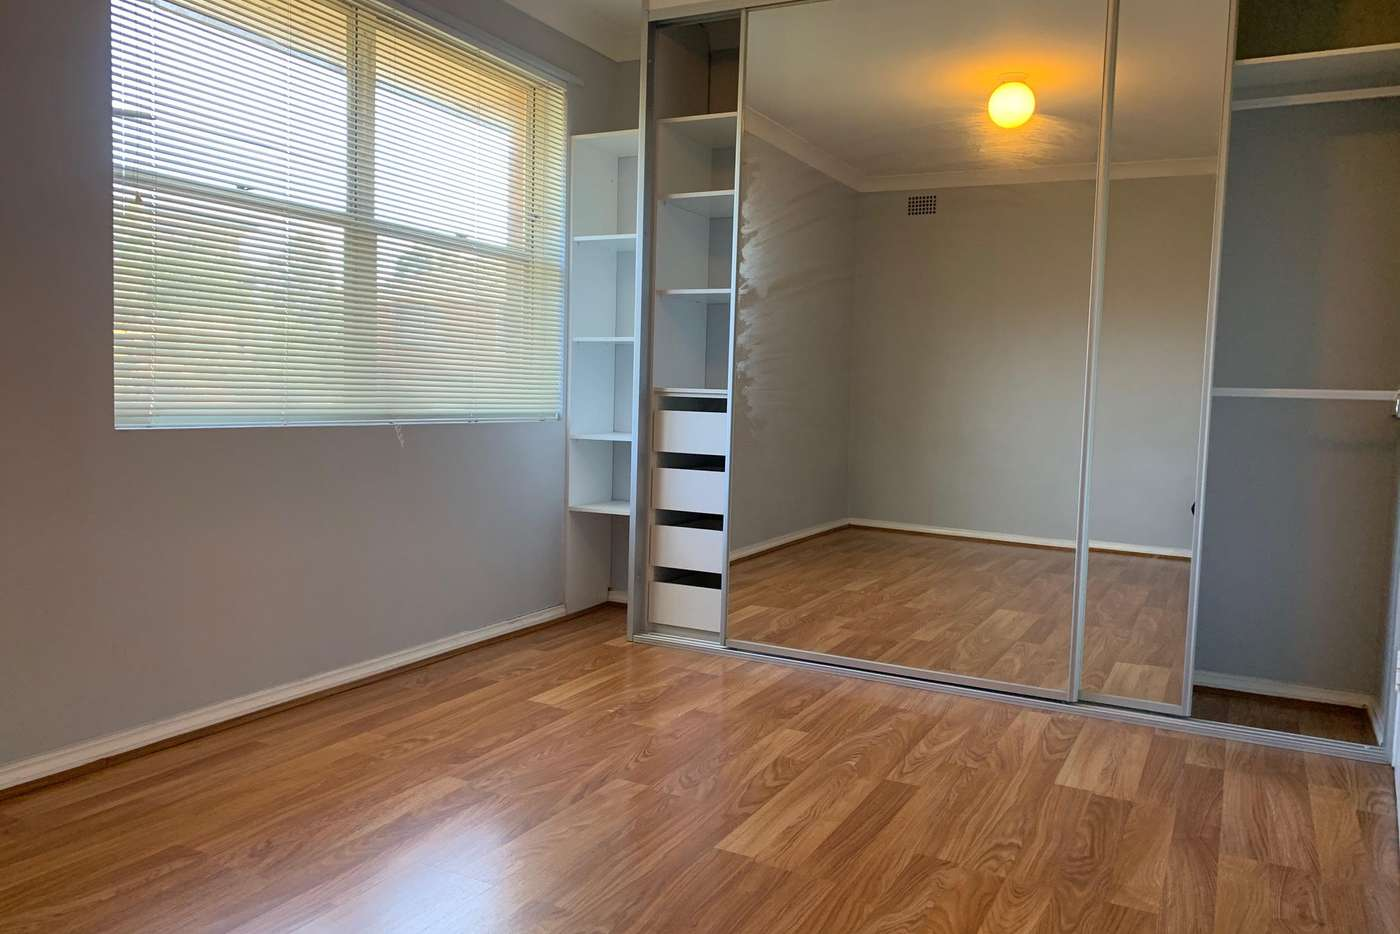 Seventh view of Homely unit listing, 5/21-23 Marlene Crescent, Greenacre NSW 2190